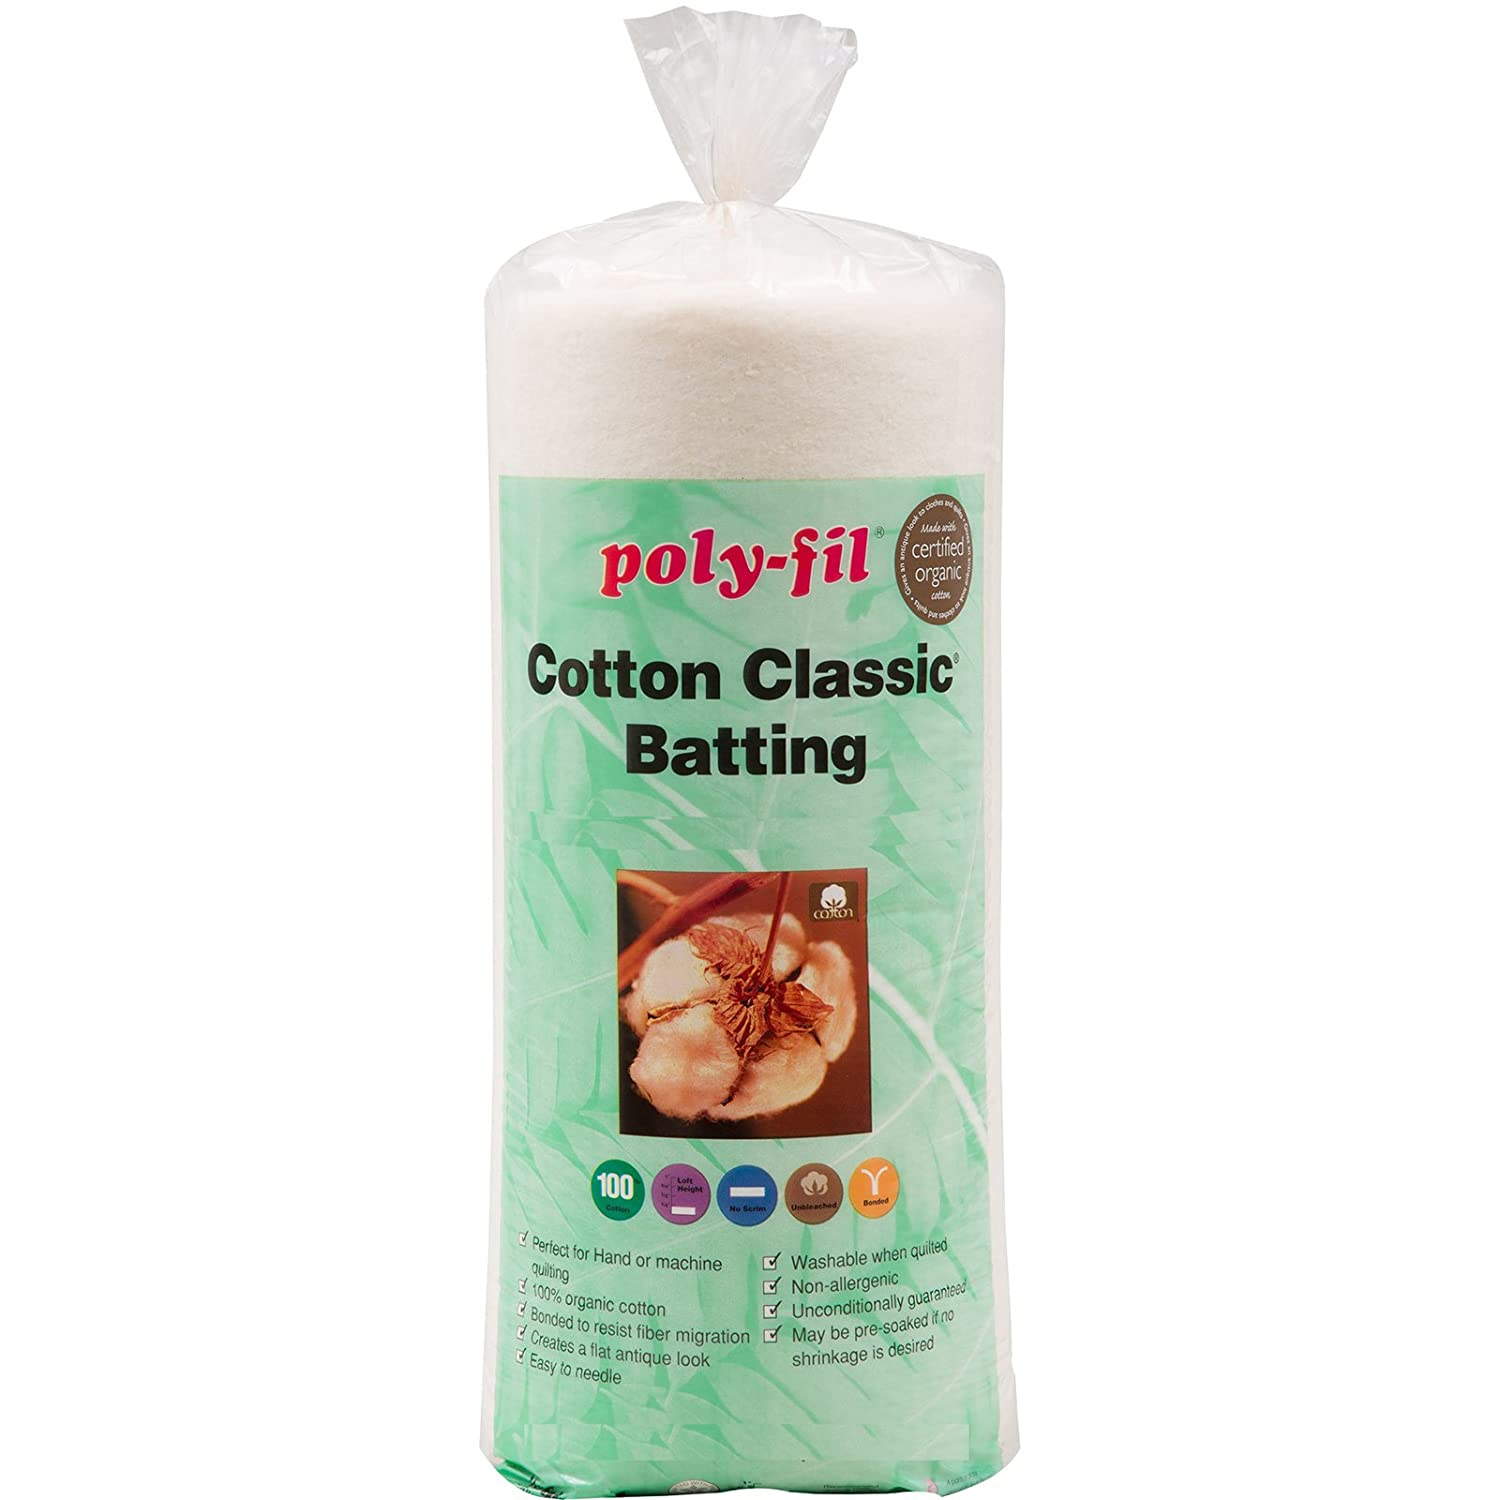 Fairfield Organic Cotton Classic Batting, 45 by 60 45 by 60 Fairfield Processing C45